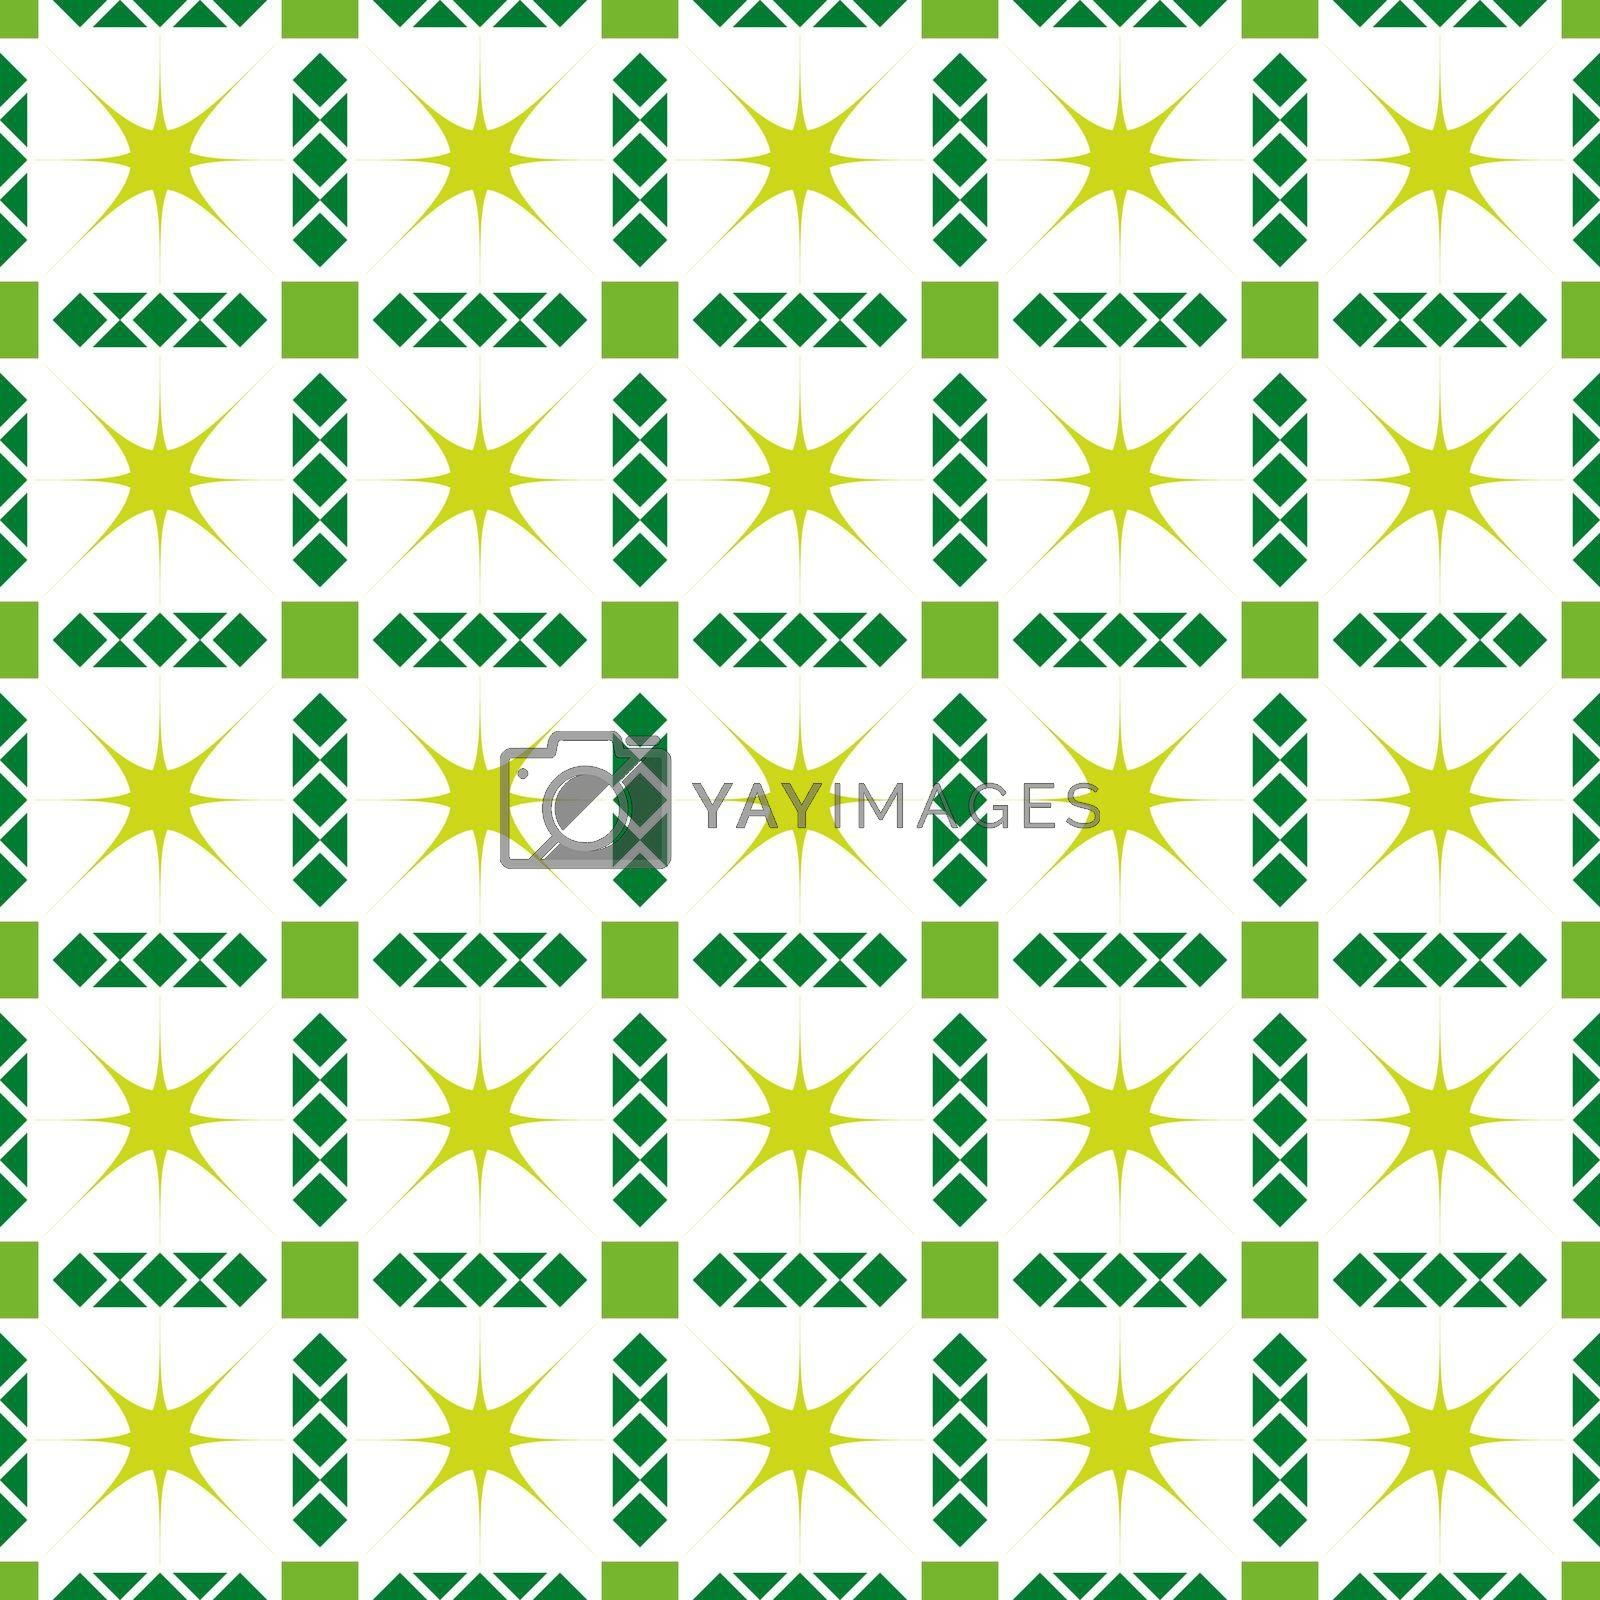 Seamless pattern with squares, diamonds, and twinkling stars for texture, textiles, packaging, and simple backgrounds. Flat Style